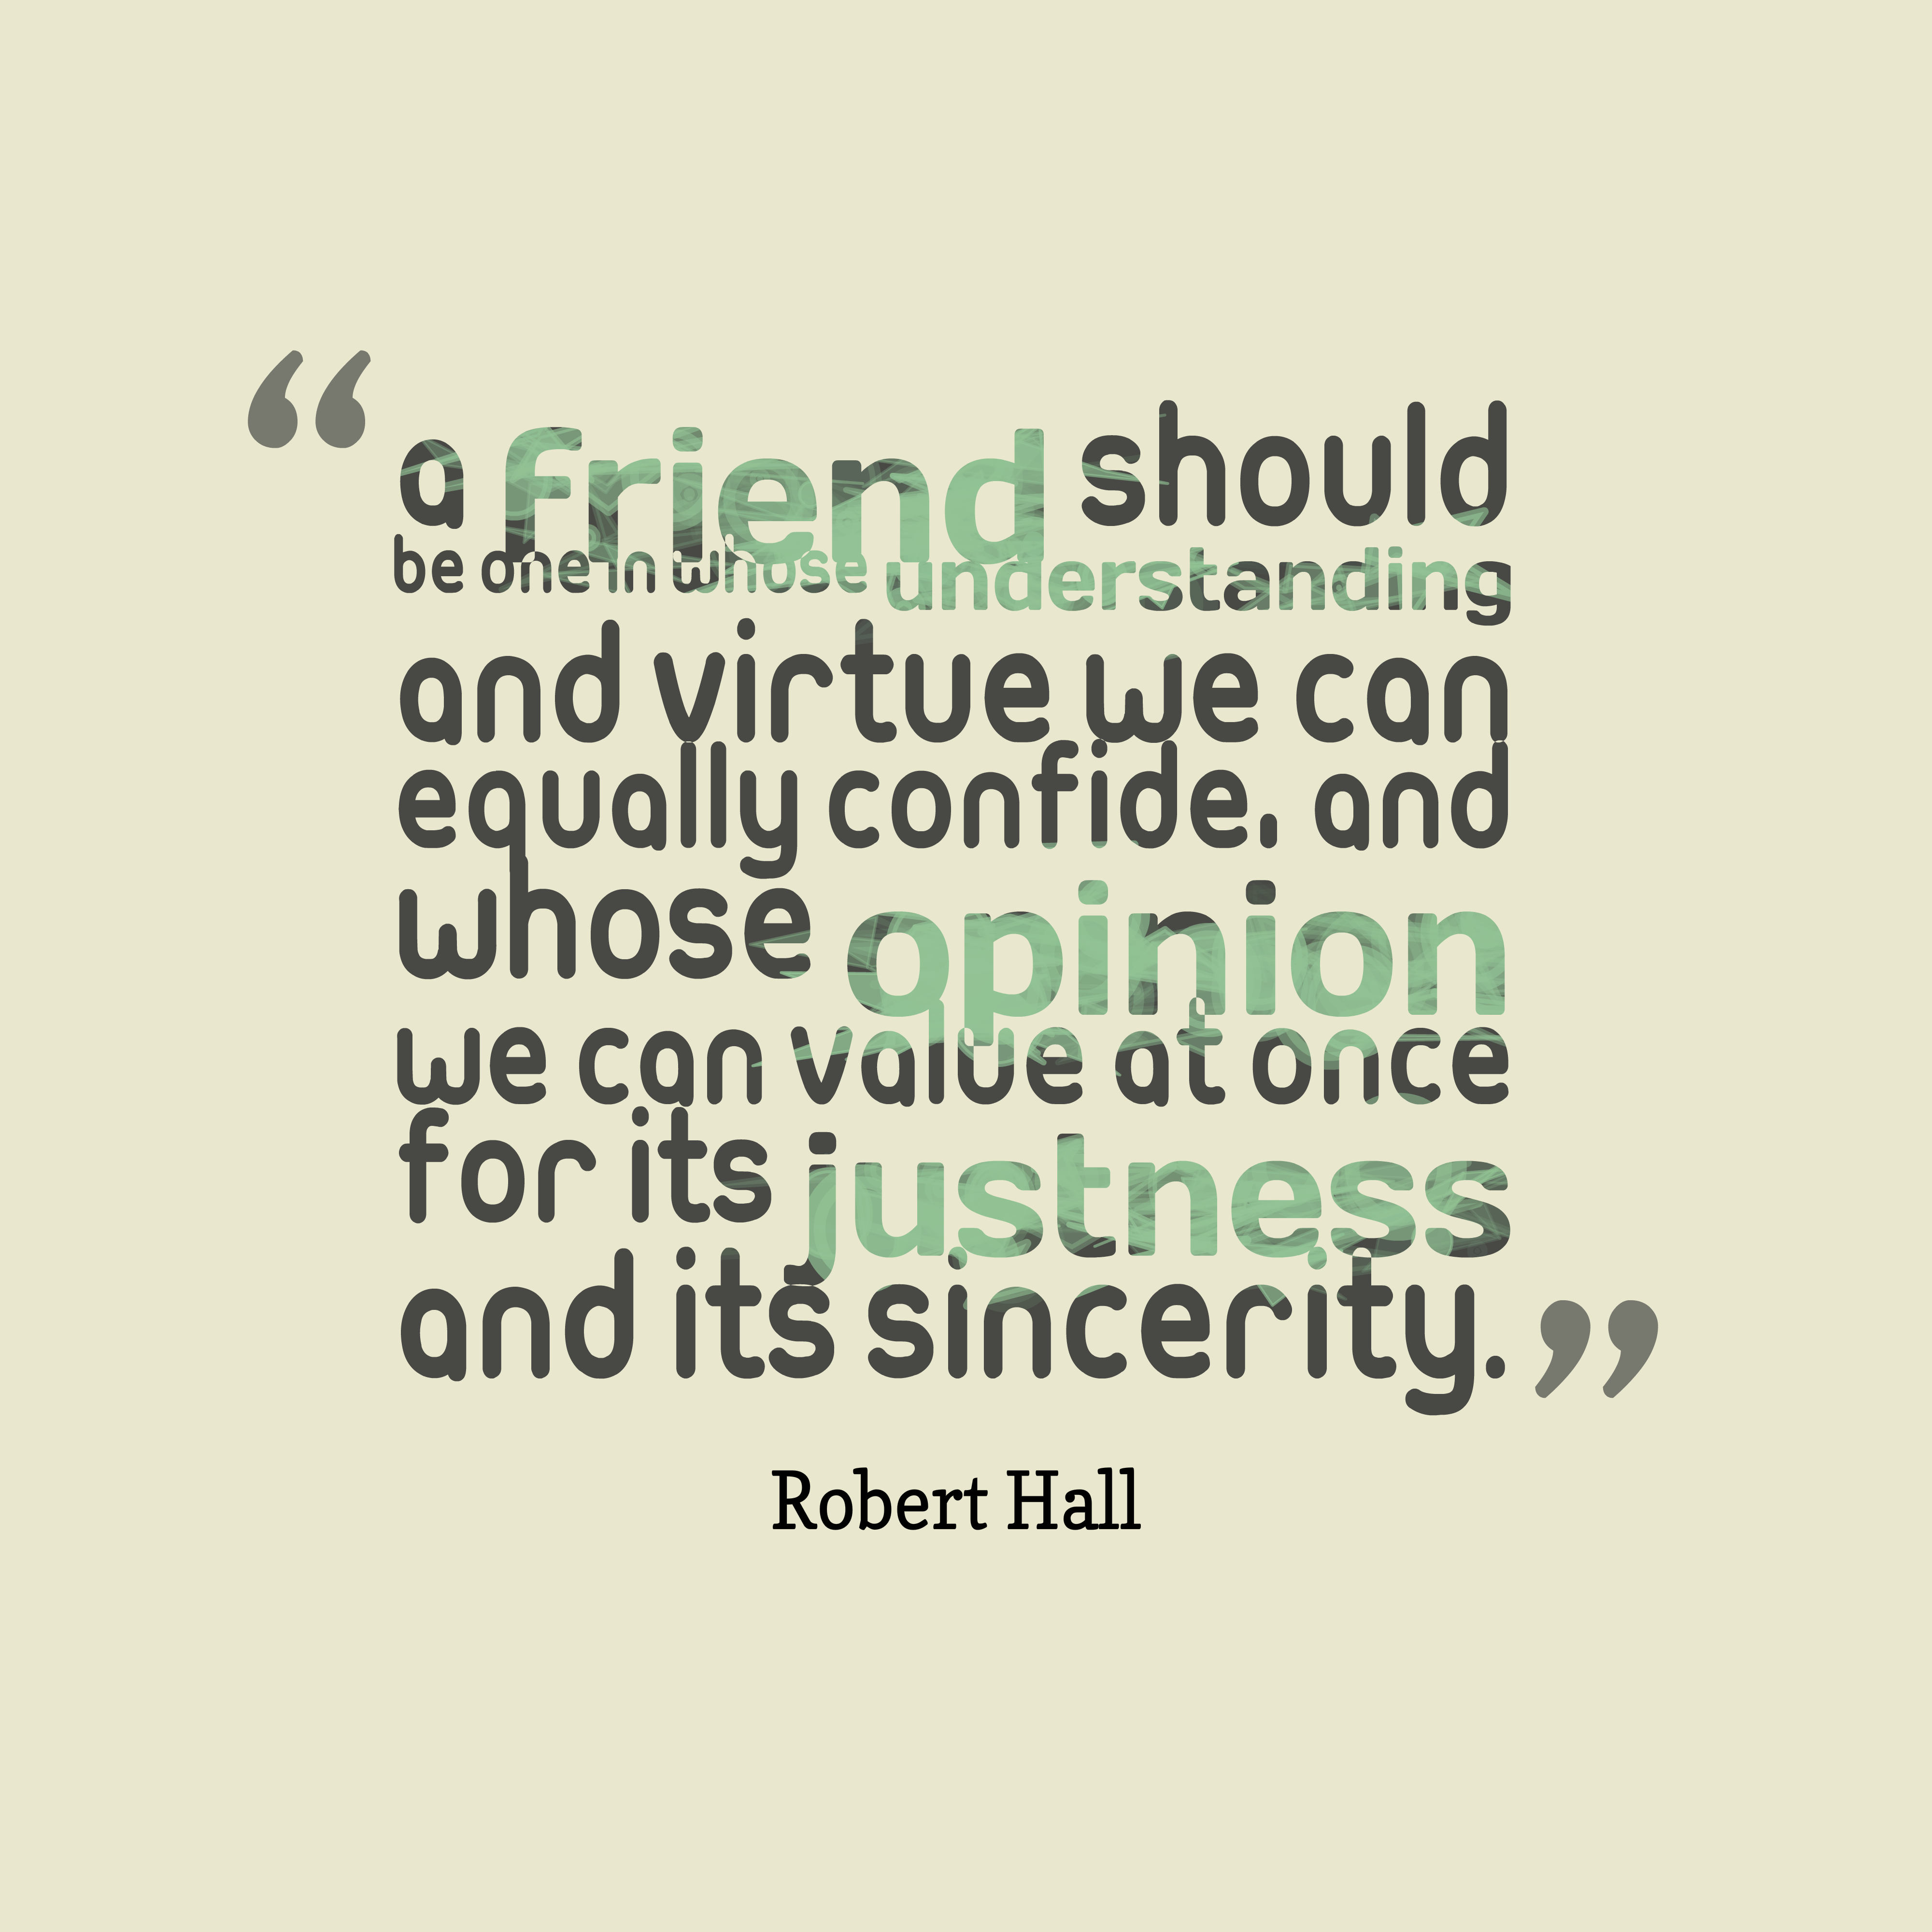 Robert Hall Quotes About Friendship